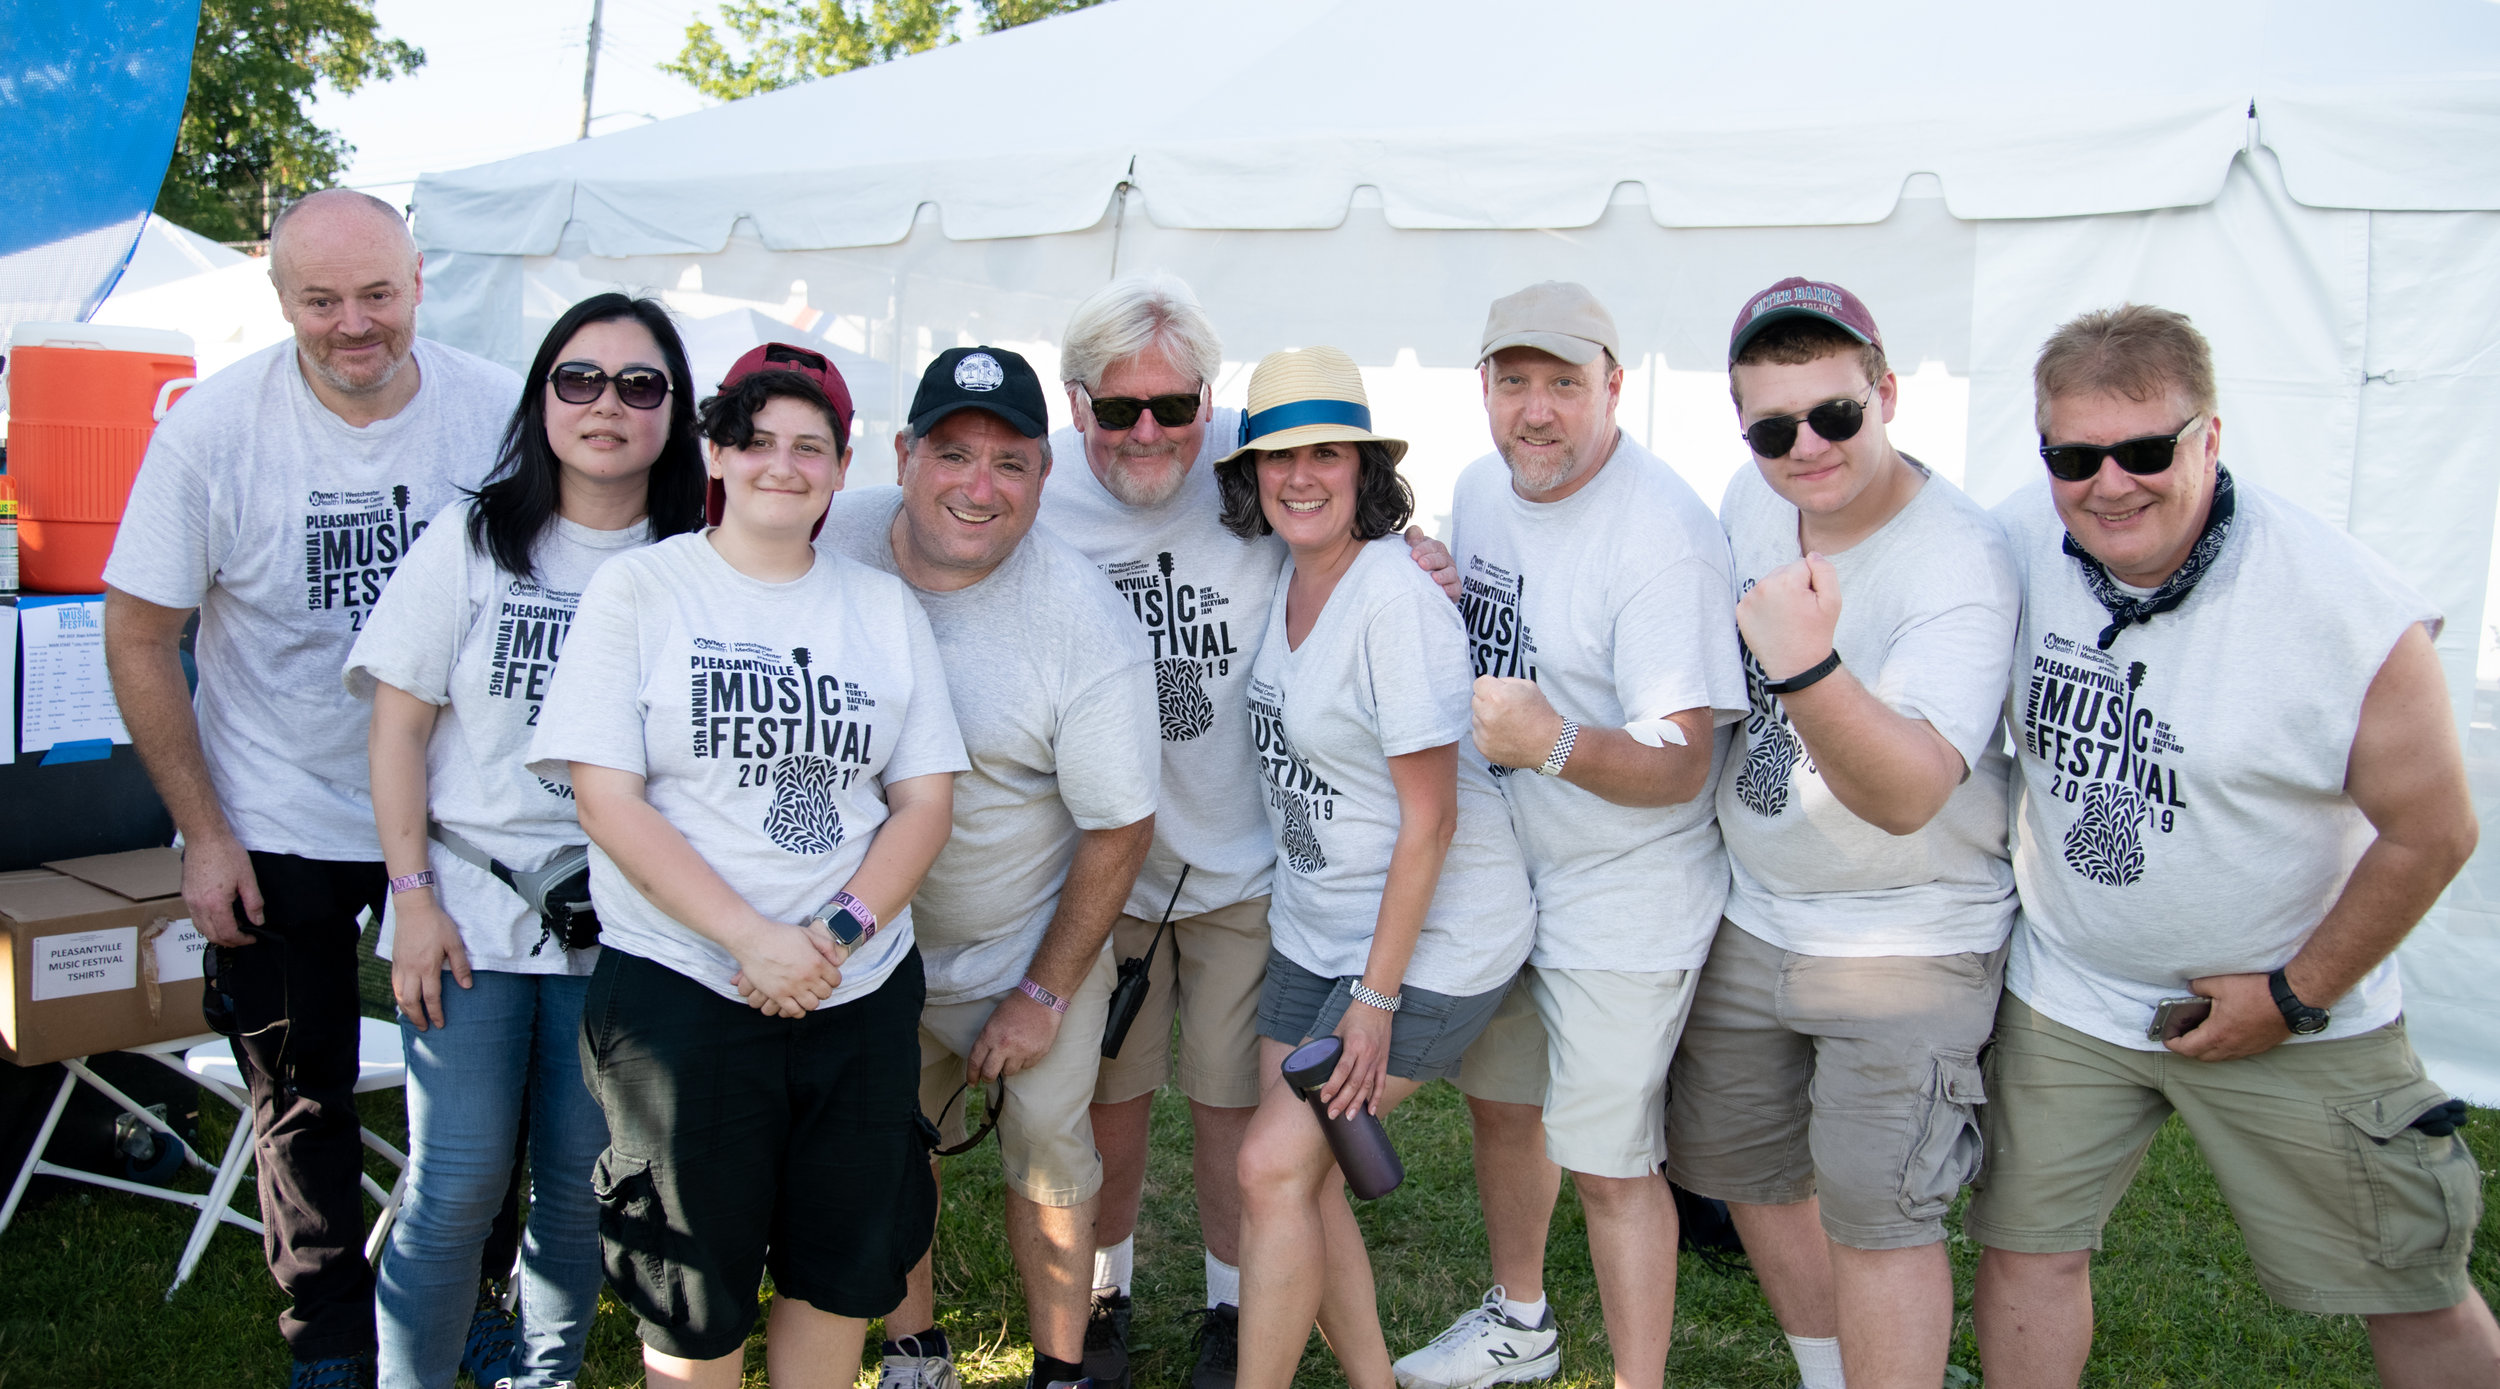 Our Main Stage Crew (before the long, hot day) © 2019 Lynda Shenkman